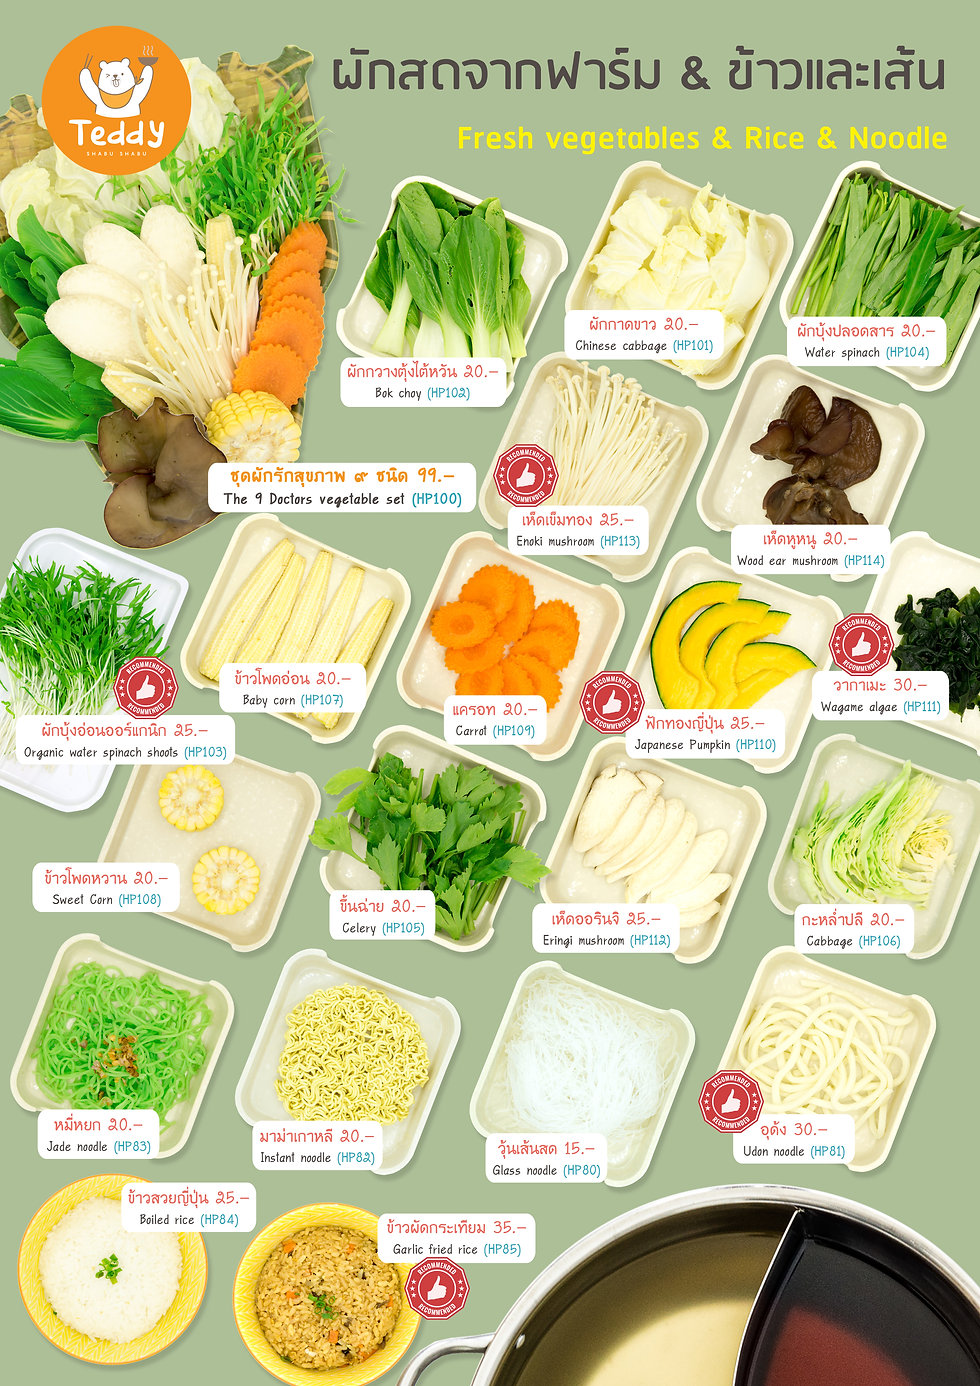 07-Fresh vegetables & Rice & Noodle.JPG